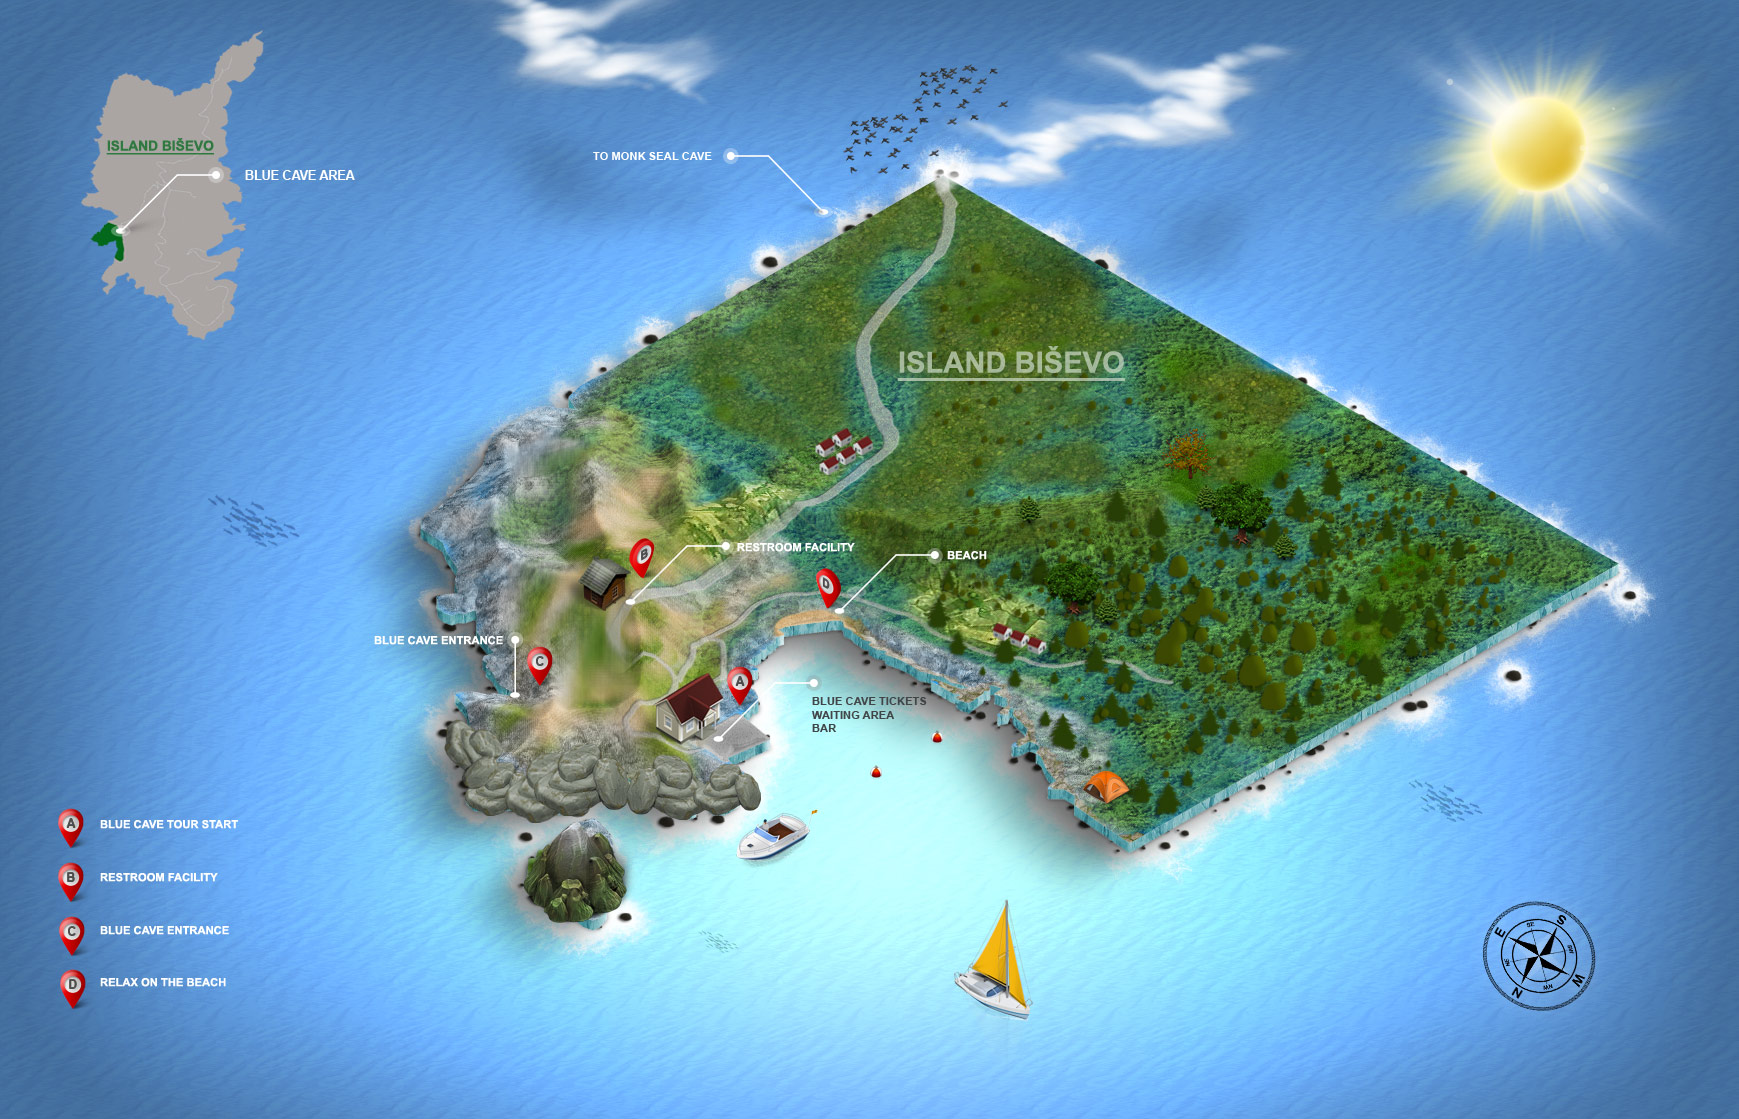 Infographic map of the Blue Cave area on Bisevo island